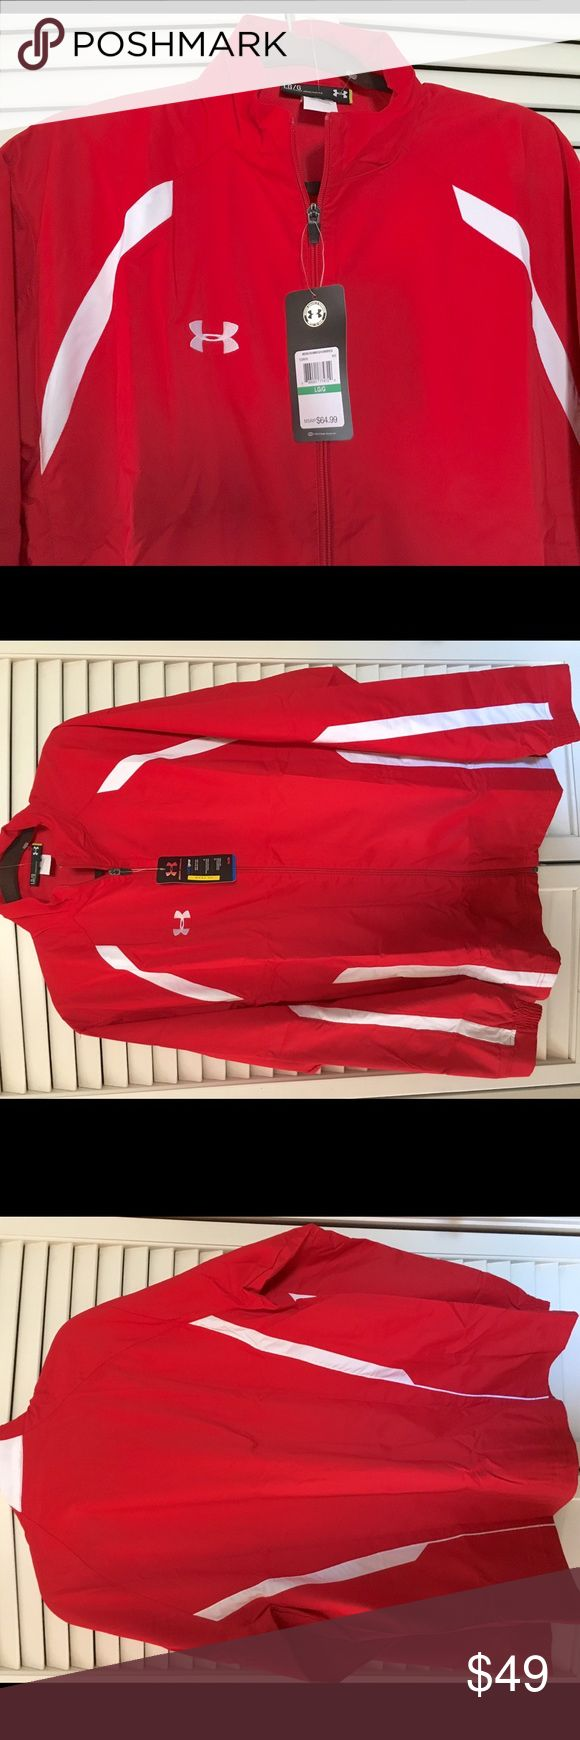 NWT Men's Under Armour Bright Red Windbreaker L What a sharp looking jacket! Bright cardinal red is set off with white inserts. Zip up front and zip pockets. 100% easy care polyester. Inside is lined with mesh. Brand-new with tags, men's size large.  Buy now for spring and save a bunch 😉 Under Armour Jackets & Coats Windbreakers